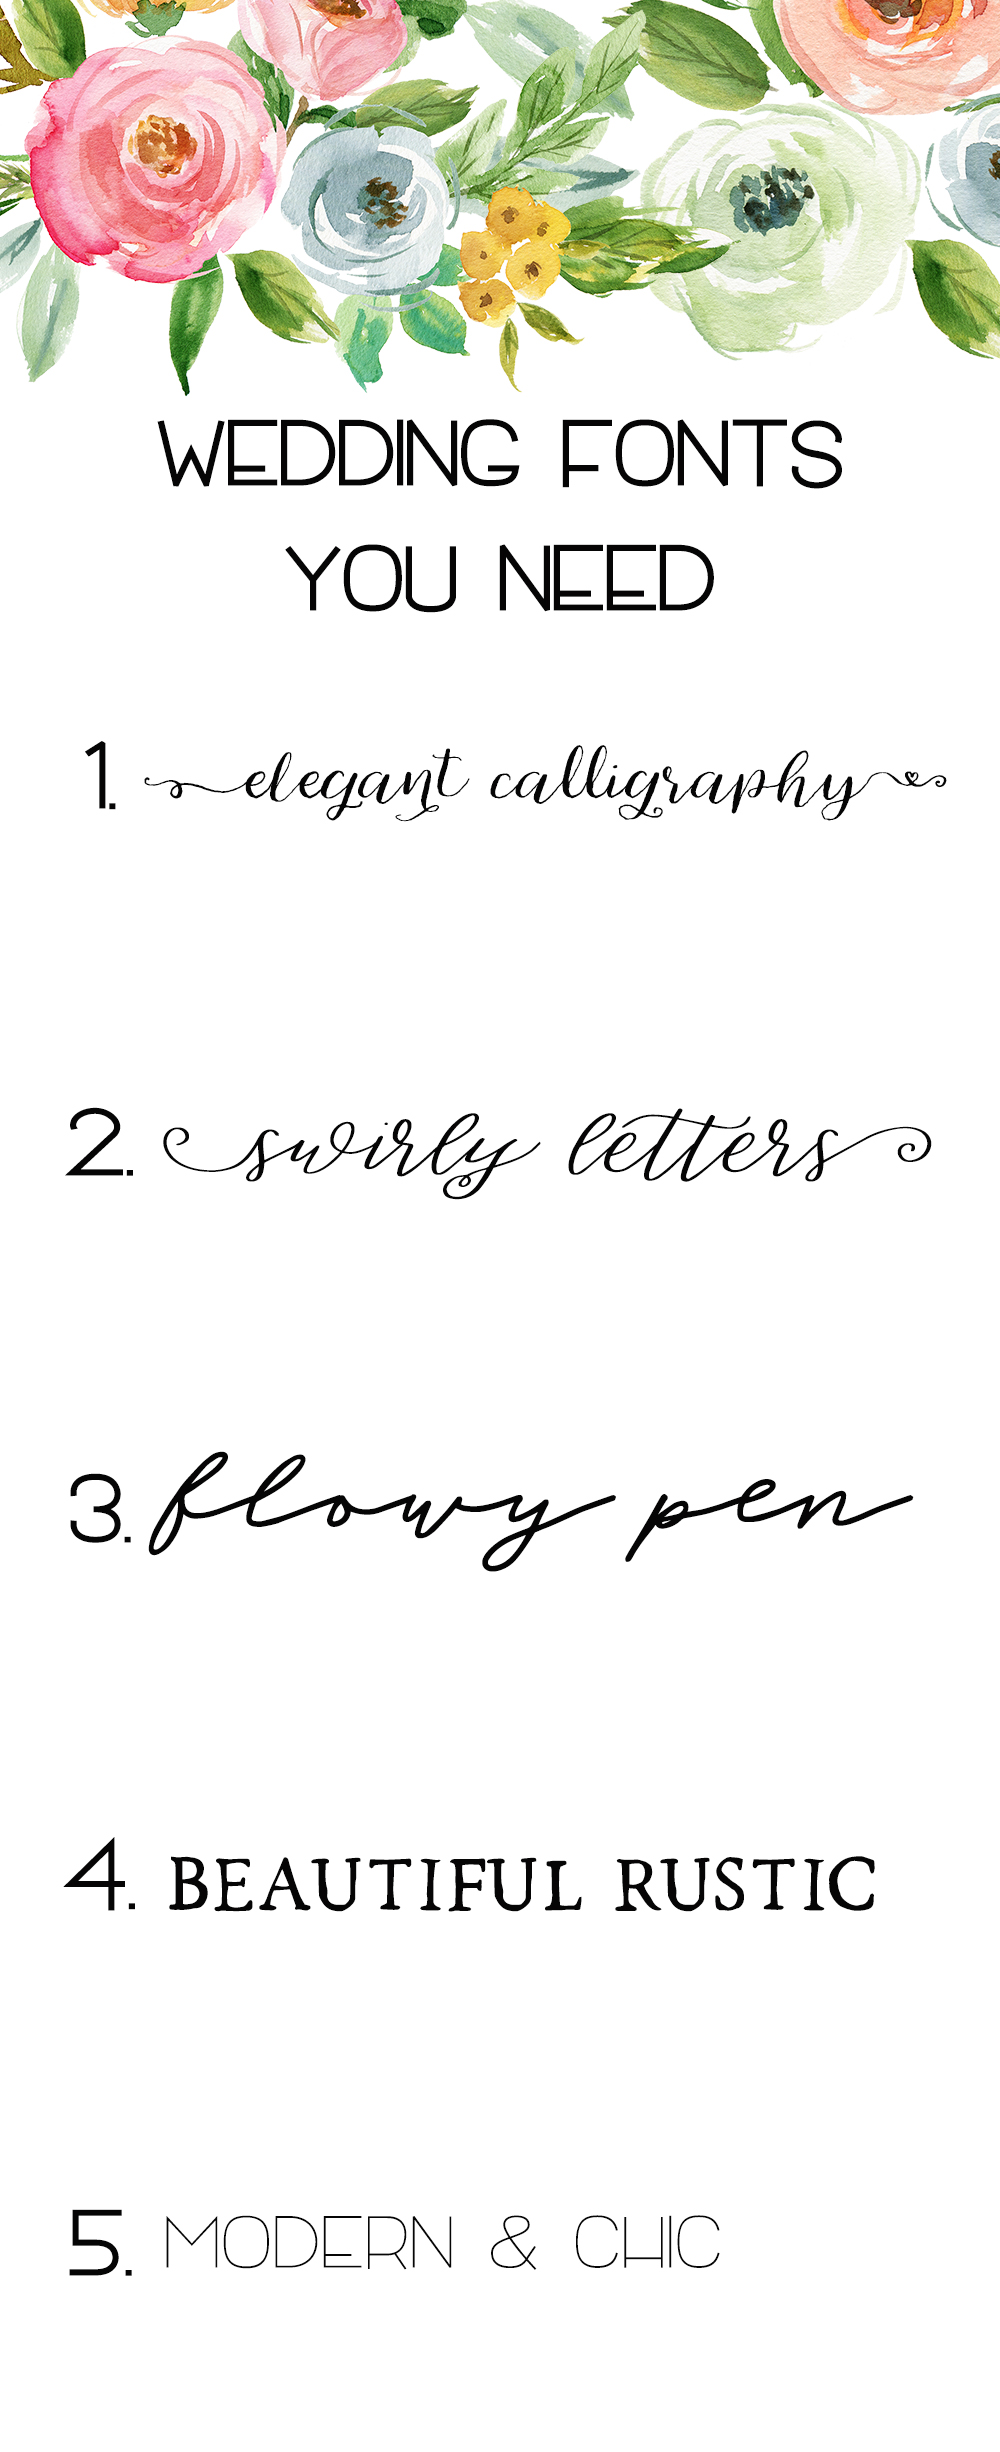 Wedding Fonts You Need!